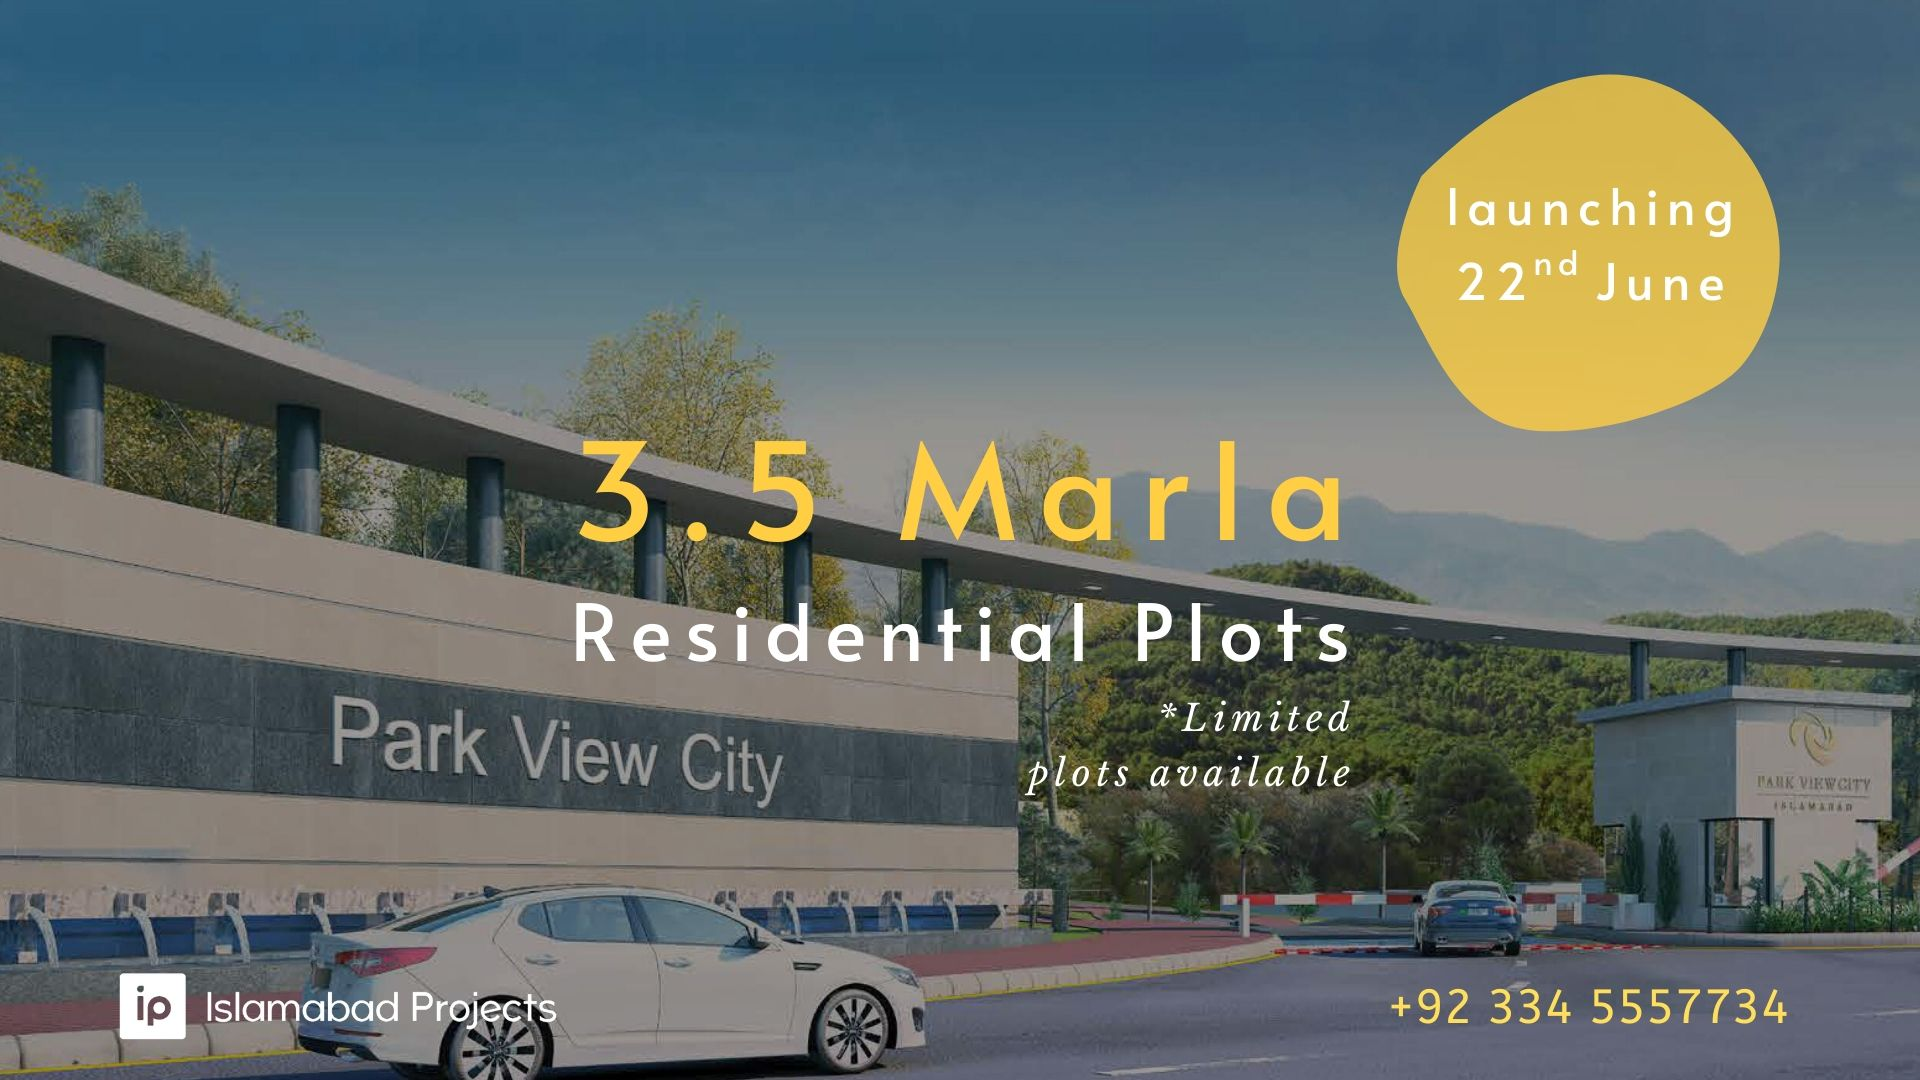 Park View City Launches 3.5 Marla Residential Plots